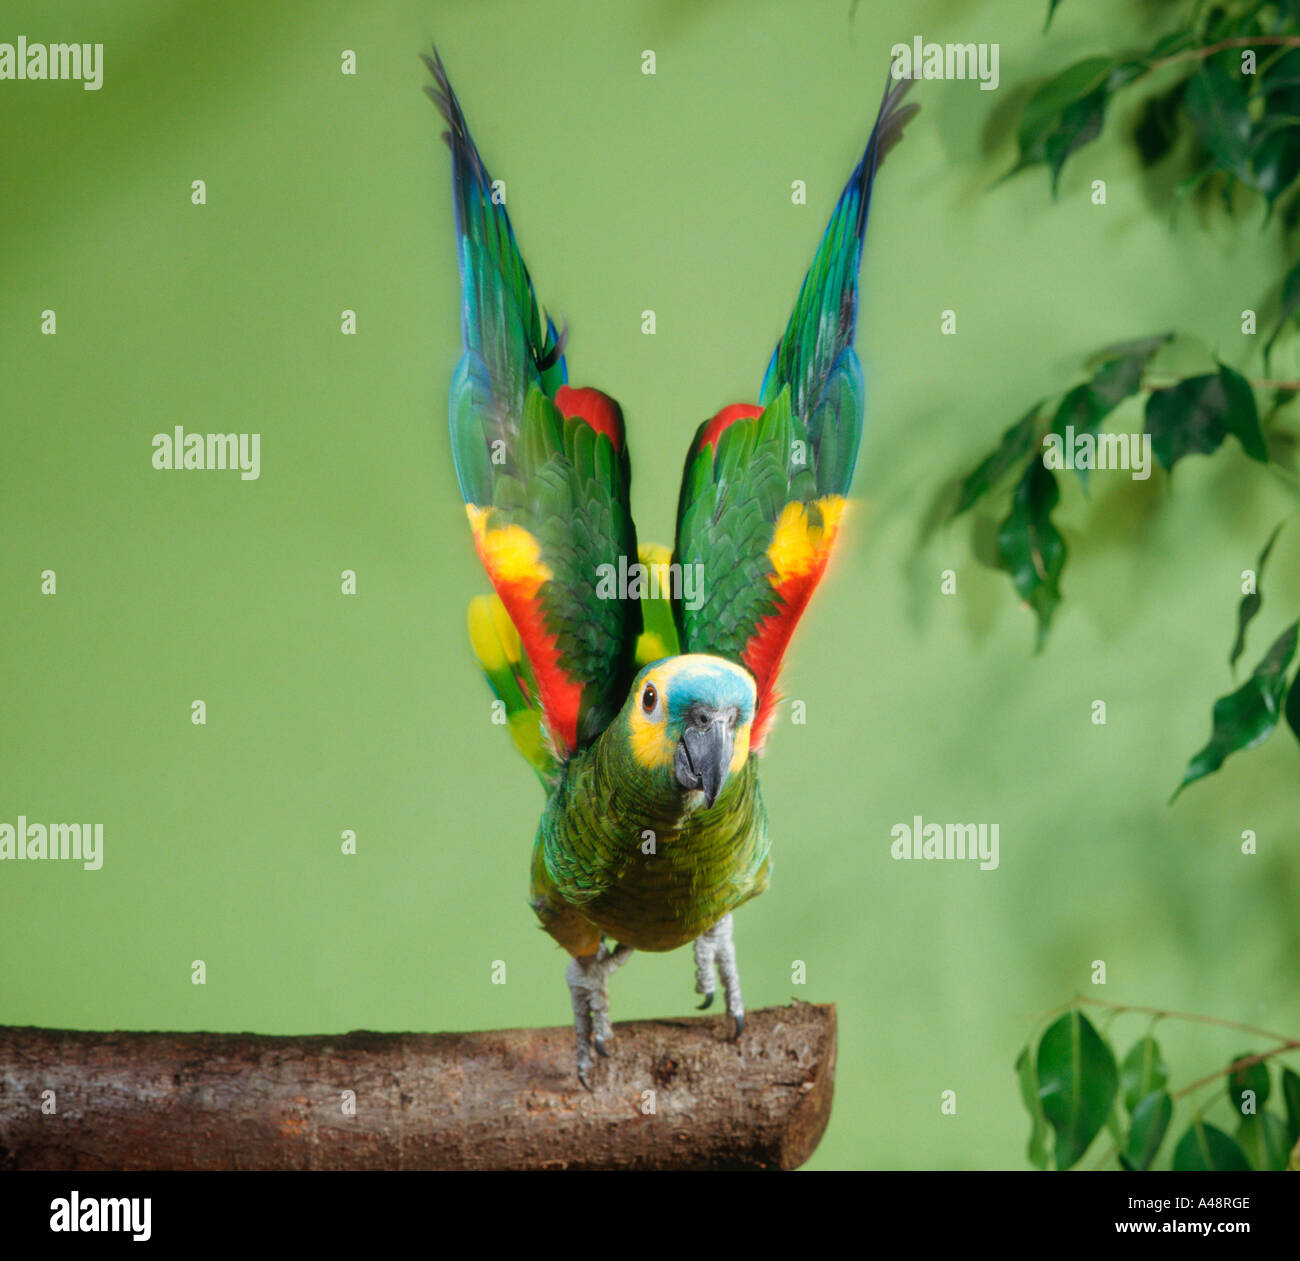 Blue Fronted Amazon Turquoise Parrot Stock Photo 6269261 Alamy